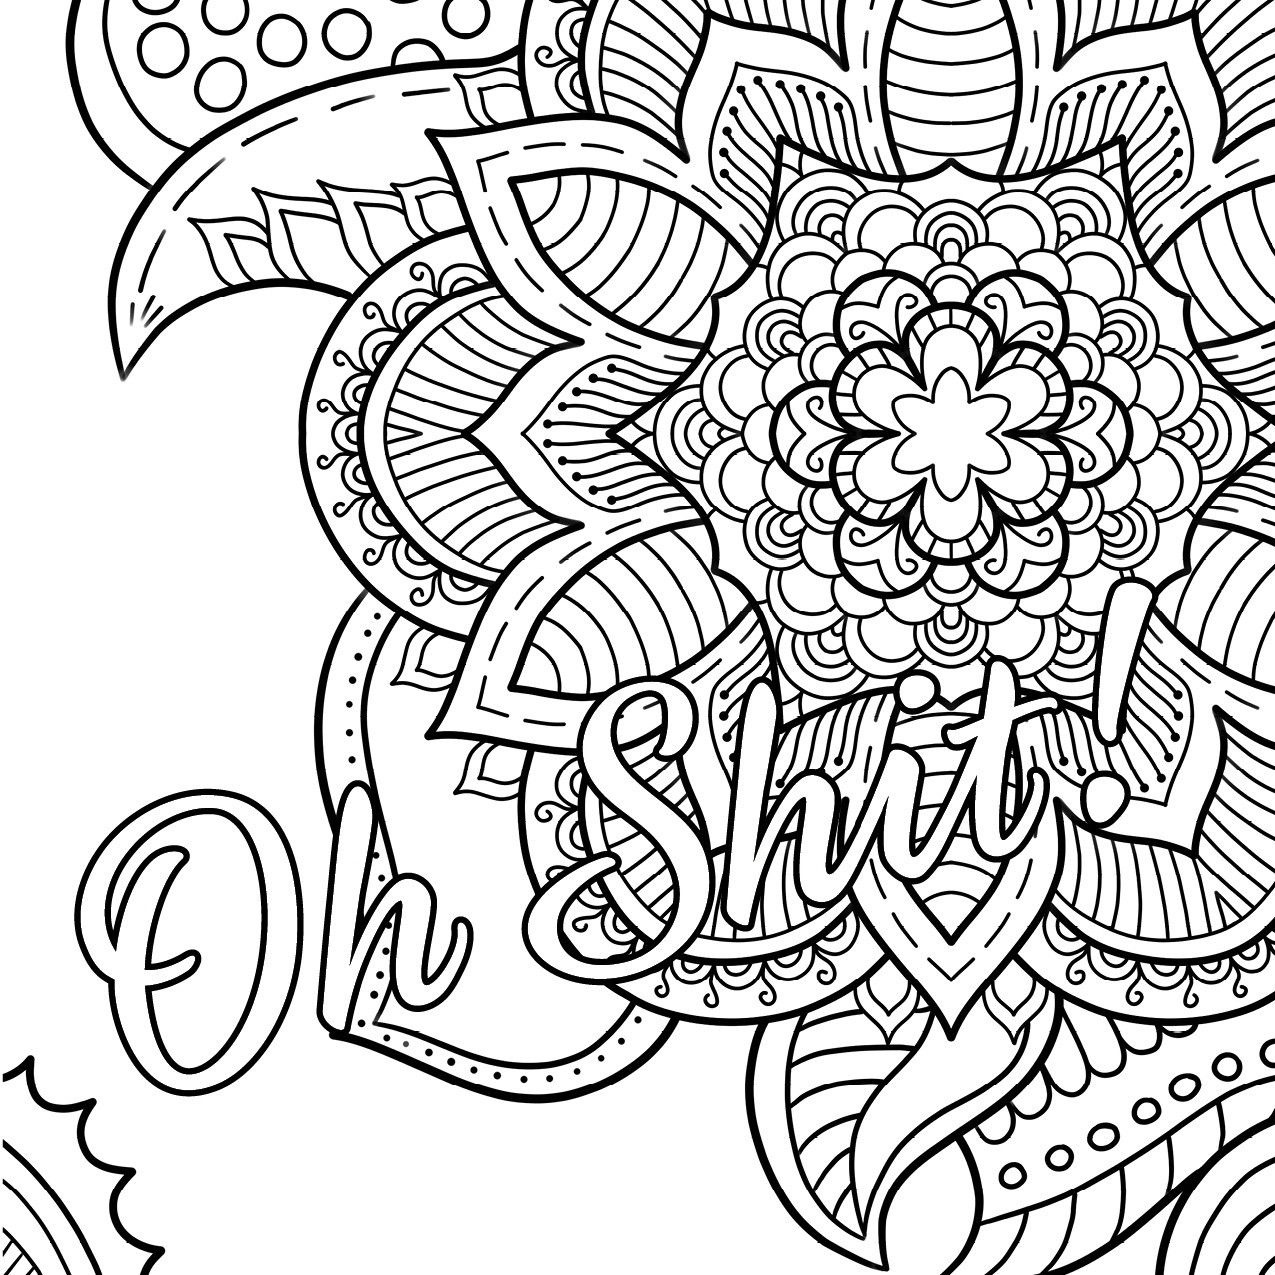 Swear Word Coloring Book #2 Free Printable Coloring Pages For Adults - Free Printable Coloring Book Pages For Adults